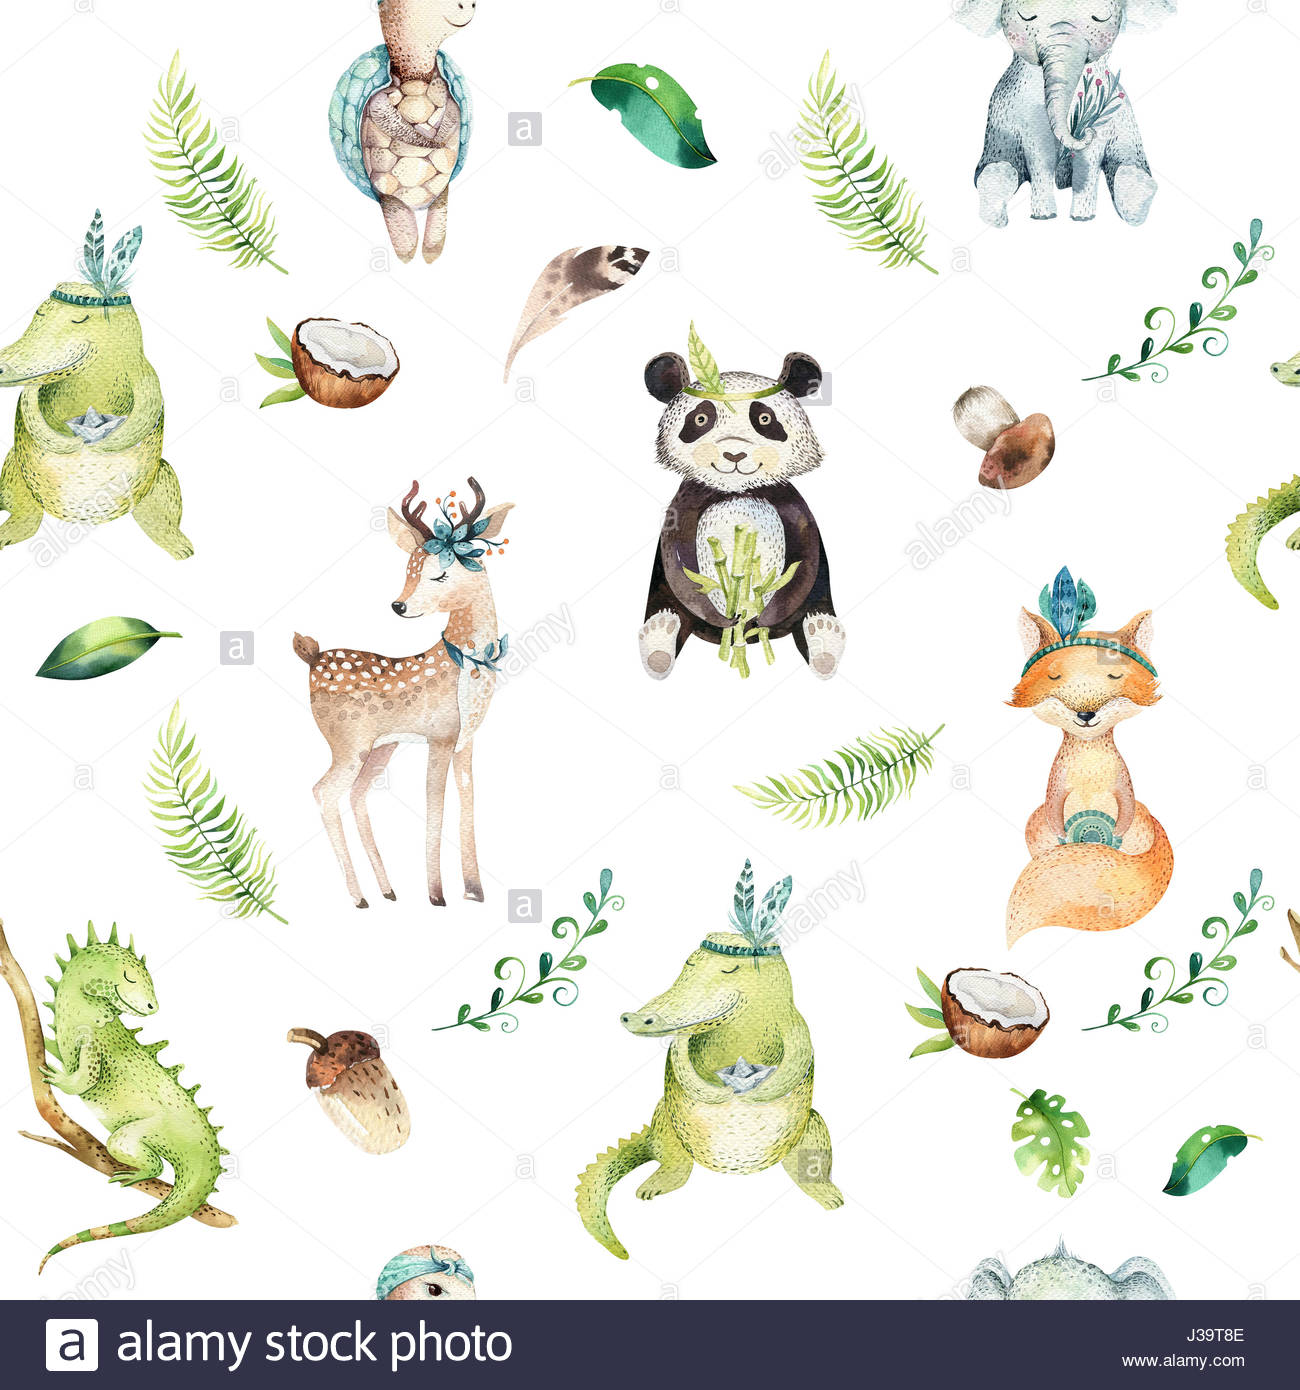 1300x1390 Baby Animals Nursery Isolated Seamless Pattern. Watercolor Boho